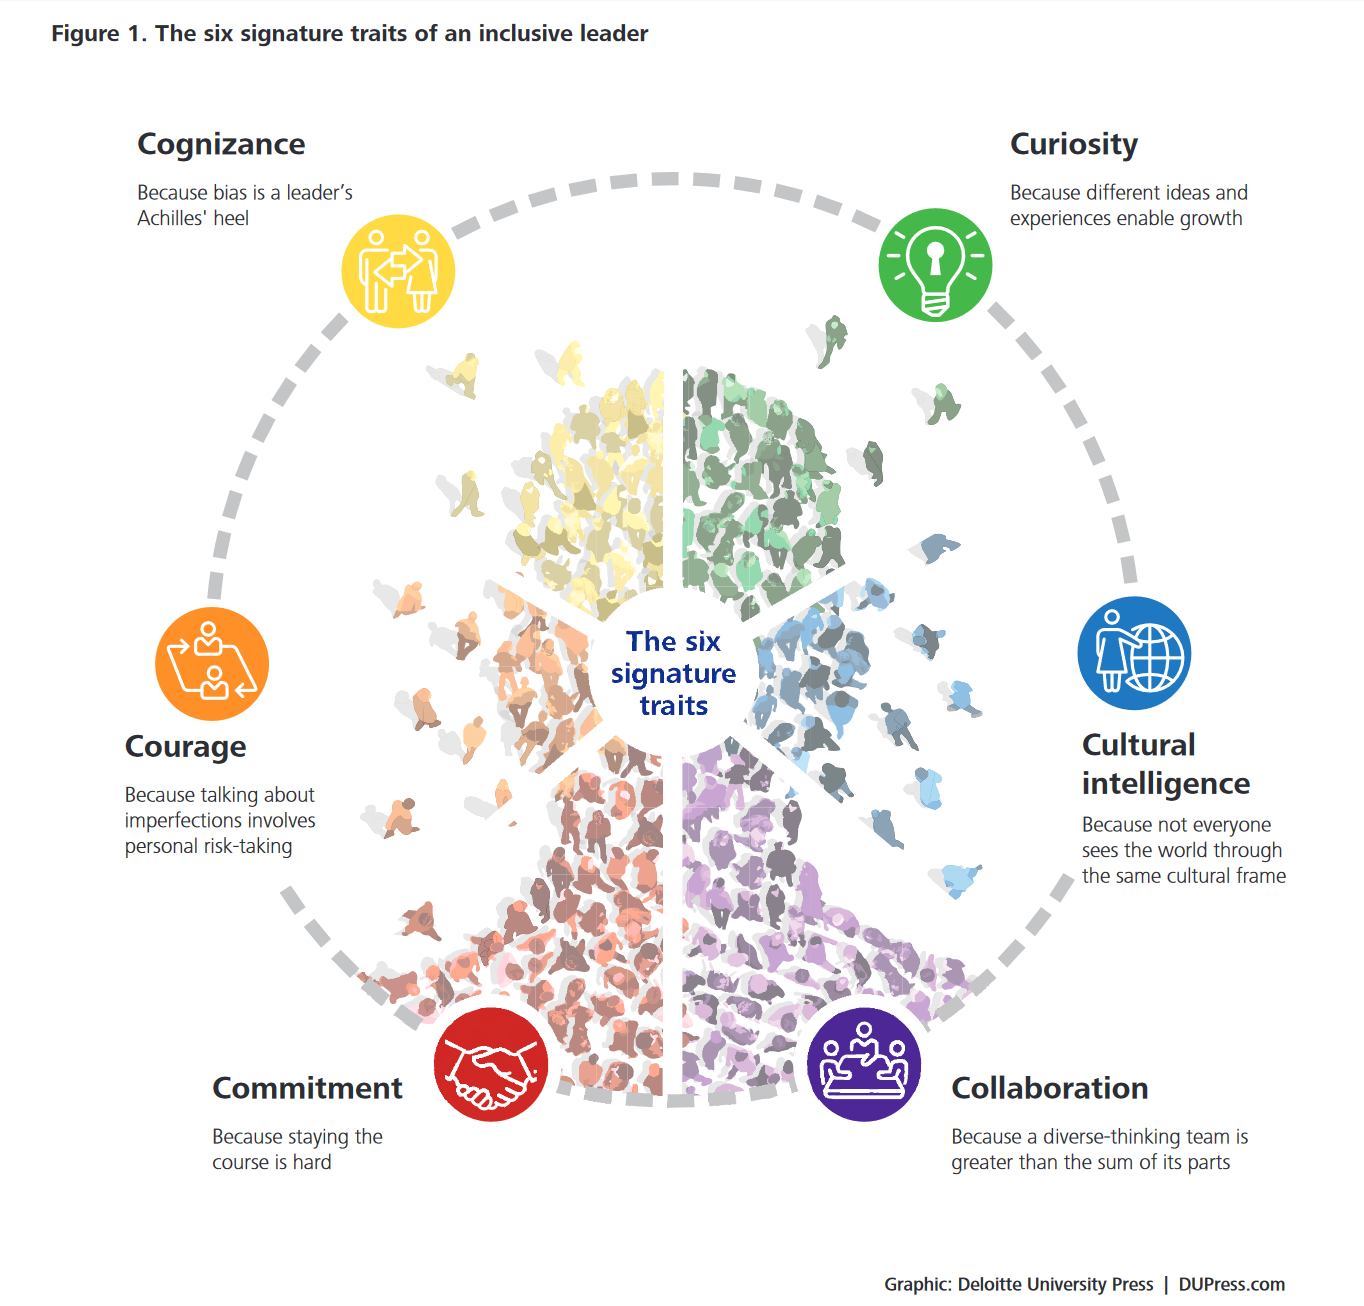 The Traits of Inclusive Leadership